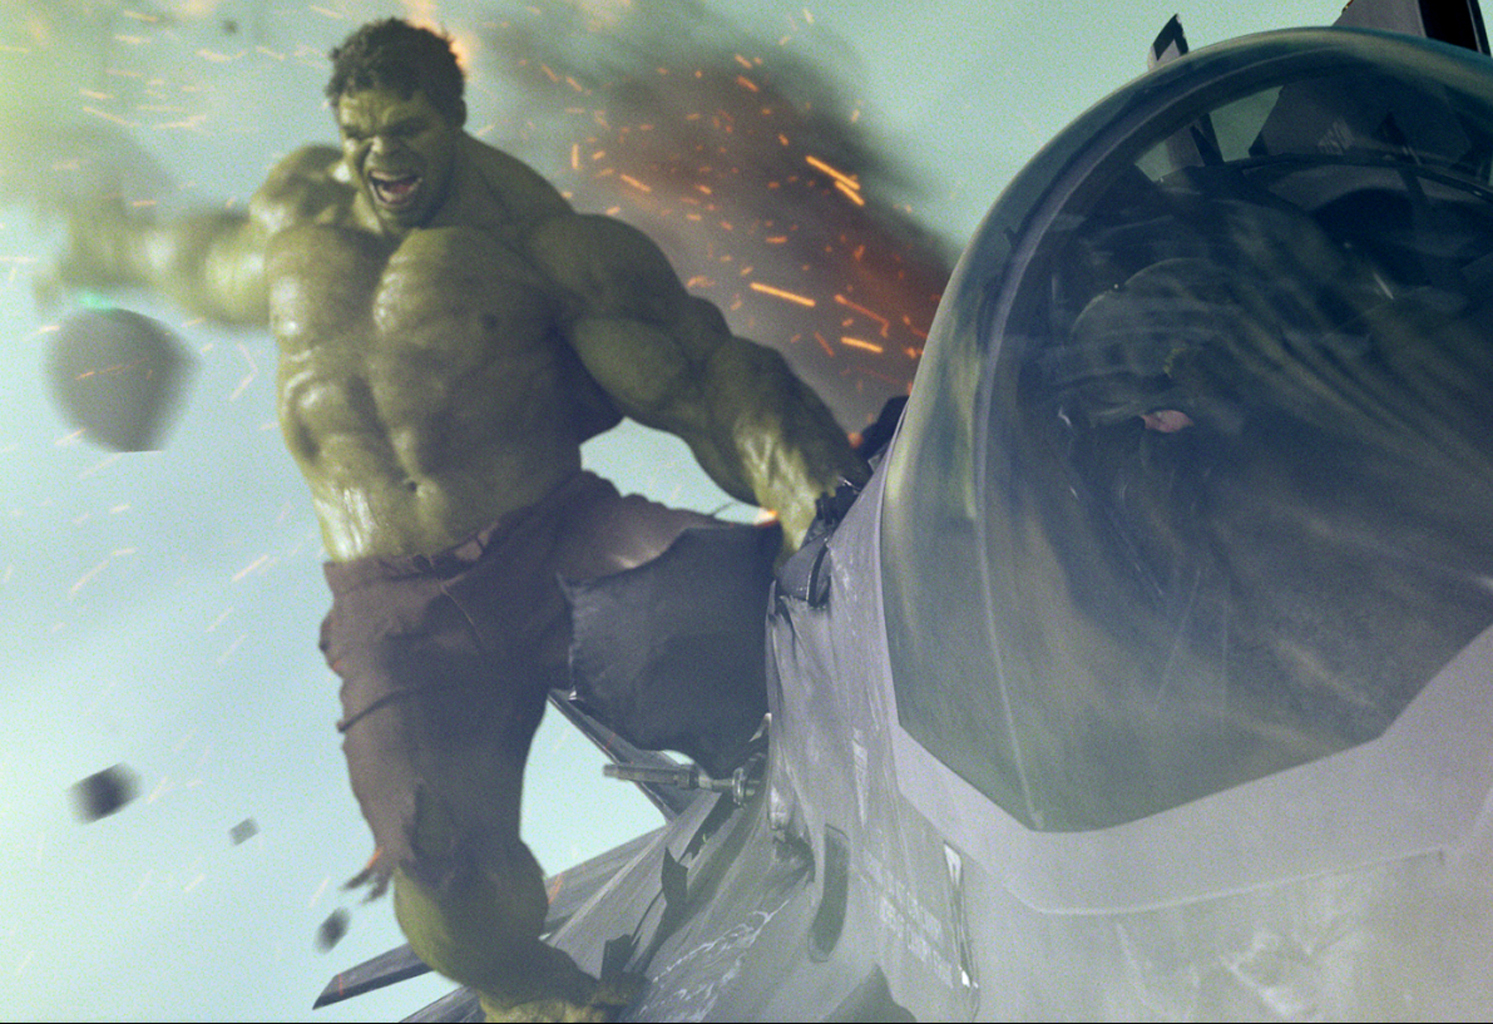 http://3.bp.blogspot.com/-jXmjFb_pIMU/T6iNkwQC8nI/AAAAAAAAAcg/VjzCWn5Dmj4/s1600/Marvel-The-Avengers-Movie-2012-HD-Wallpaper-The-Hulk-Bruce-Banner-53.jpg